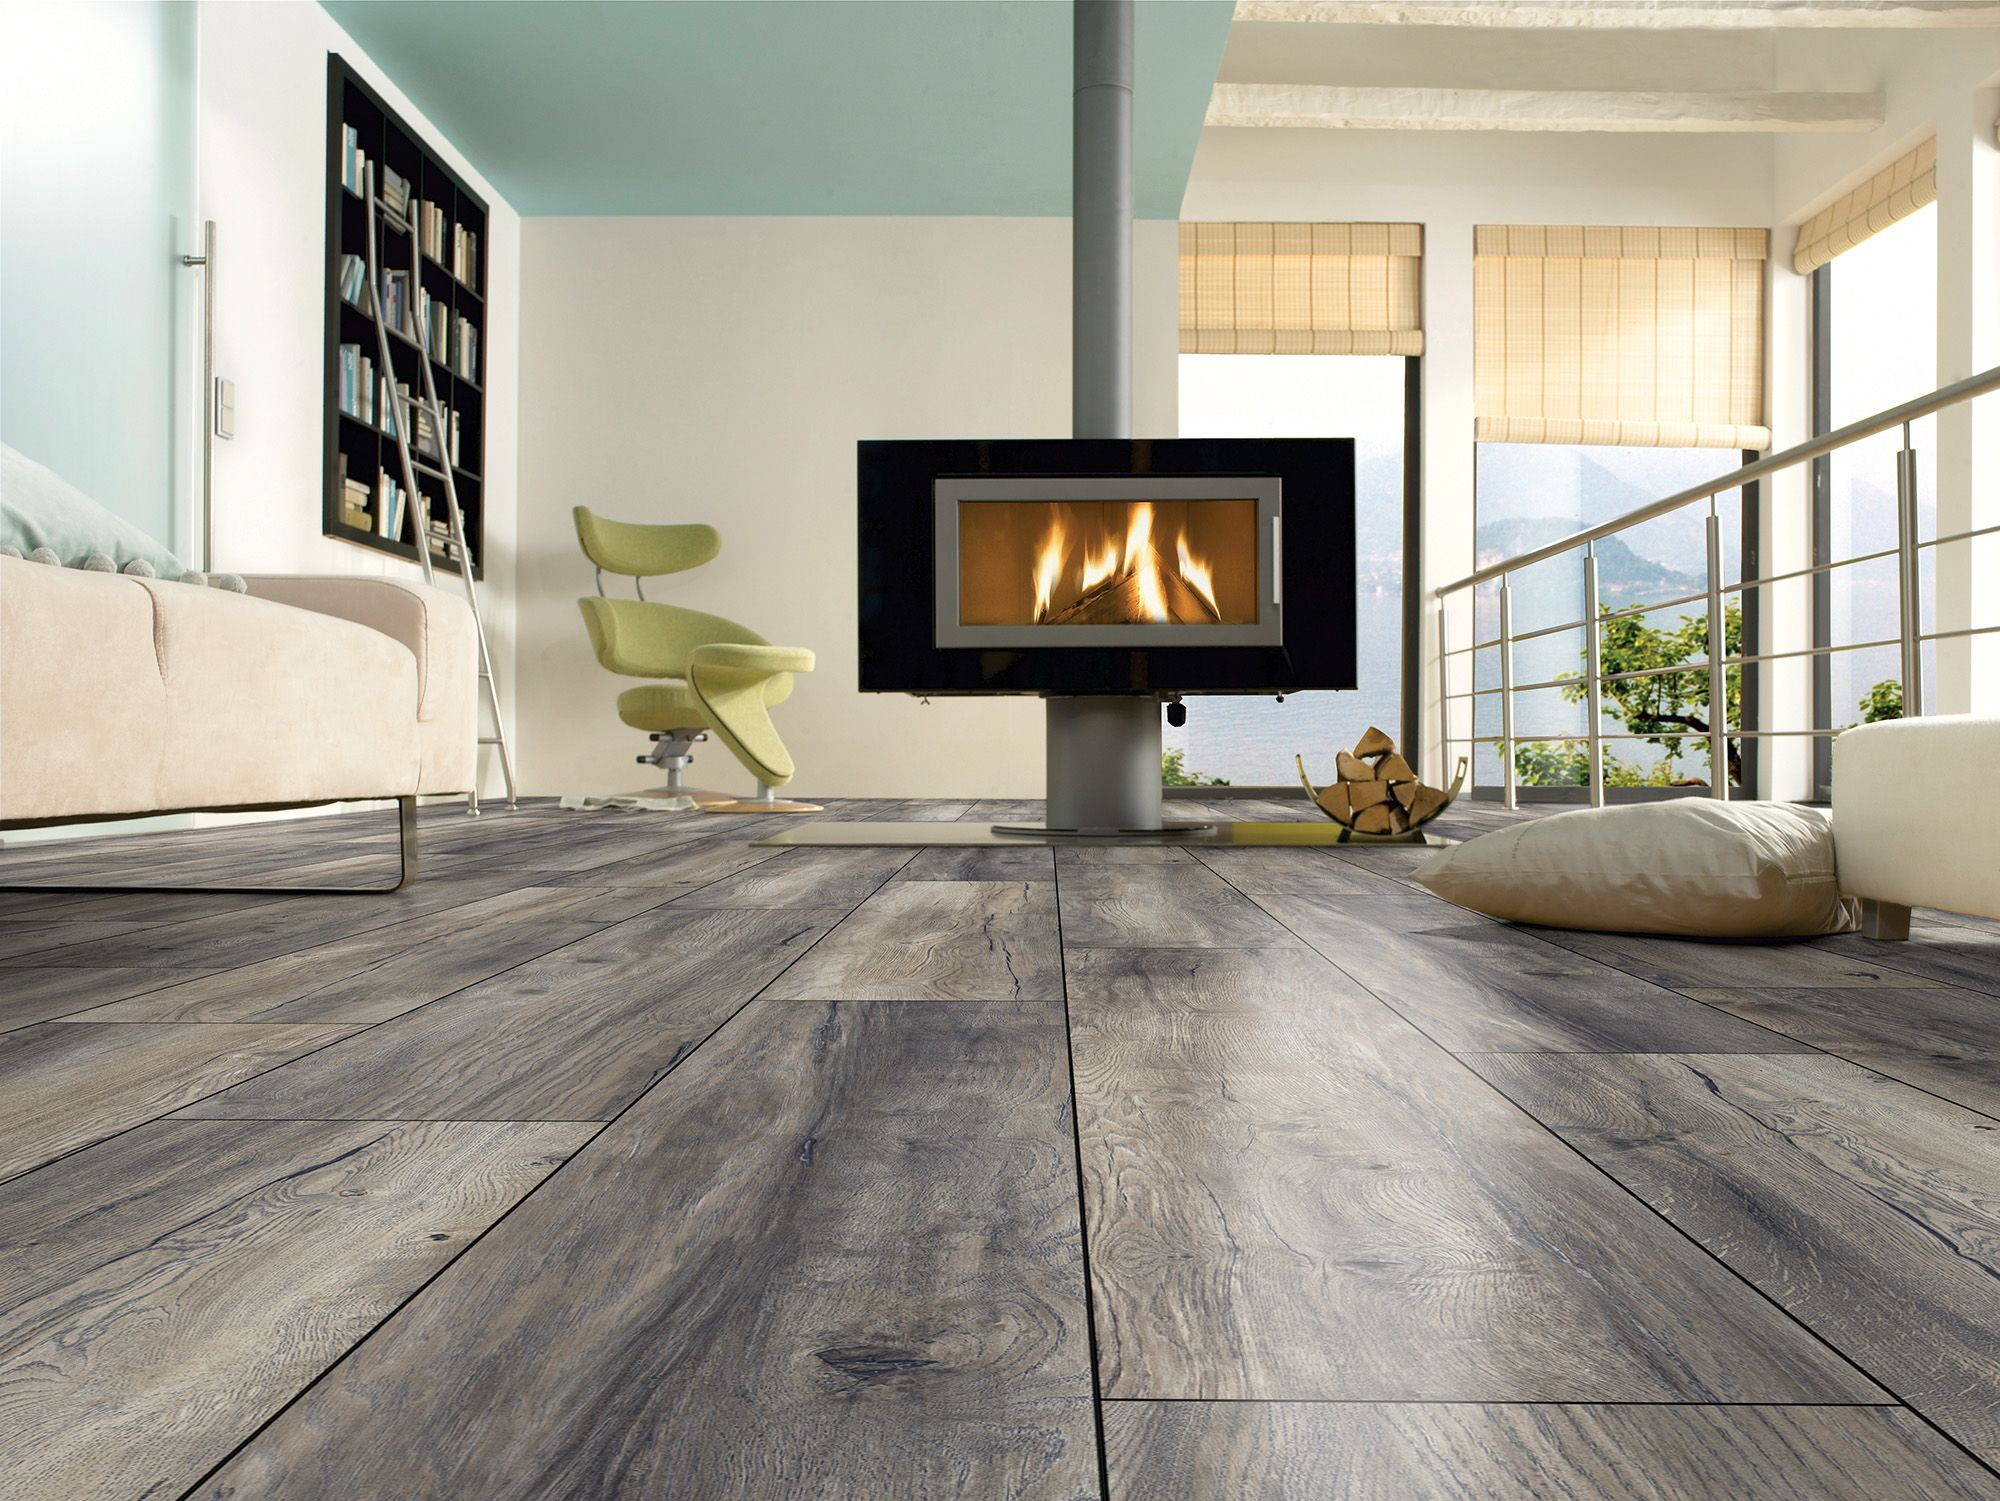 Laminat Grau Wohnzimmer Laminate 8mm Exquisit Collection For The Home Laminat